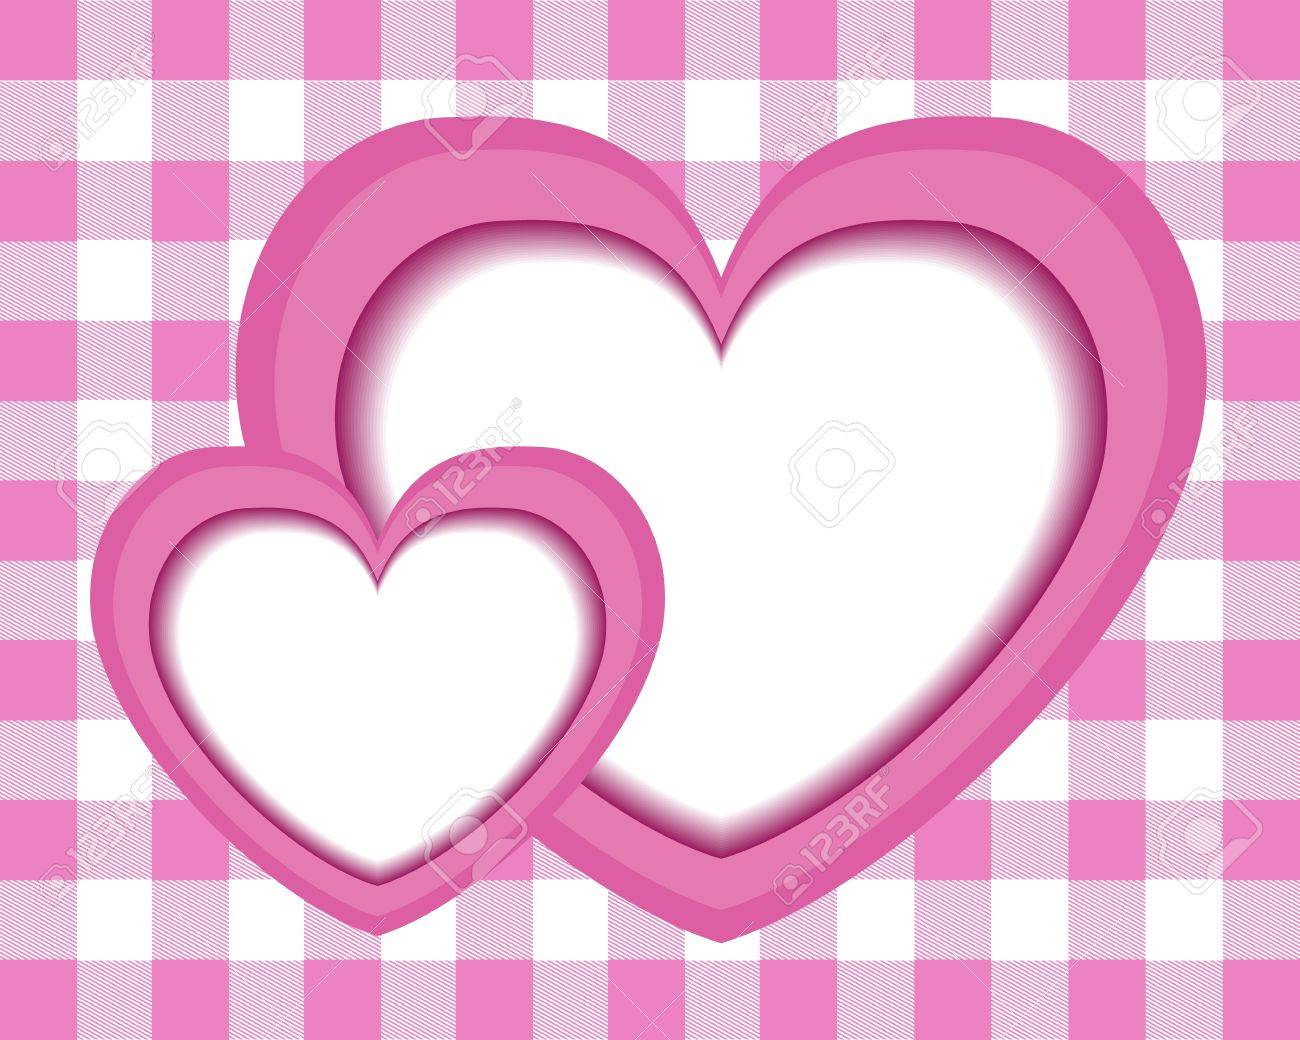 Paper Pink Hearts On A Pink Background Checkered Tablecloth Italian Stock  Vector   17083314